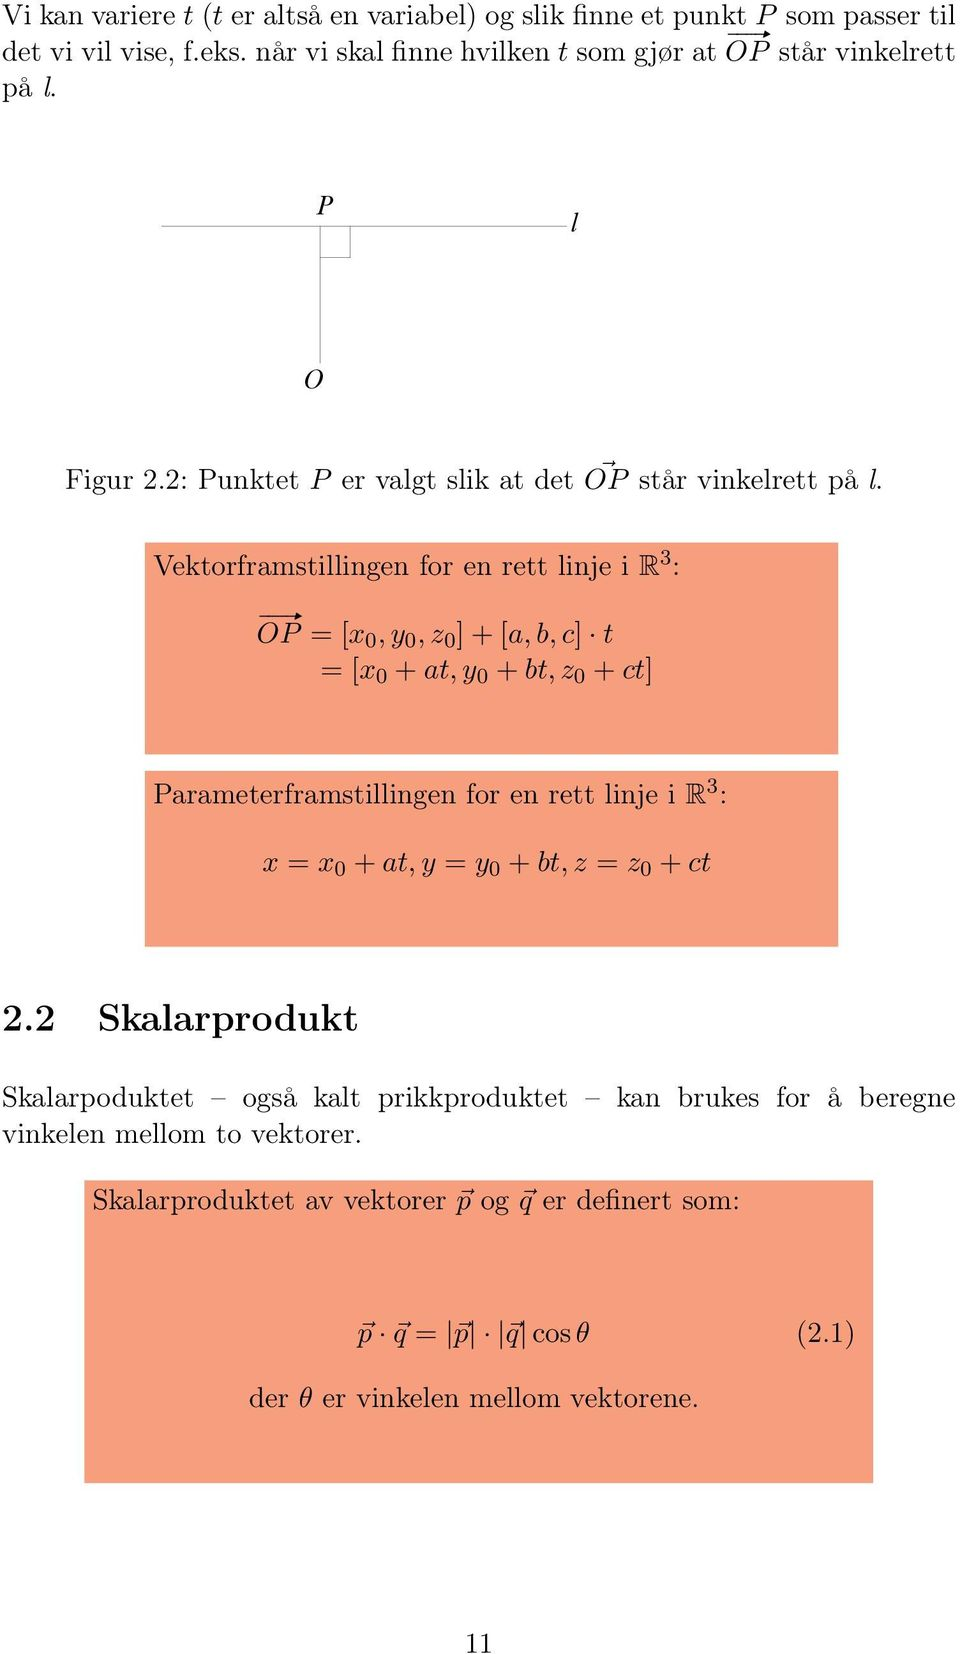 Vektorframstillingen for en rett linje i R 3 : # OP = [x 0, y 0, z 0 ] + [a, b, c] t = [x 0 + at, y 0 + bt, z 0 + ct] Parameterframstillingen for en rett linje i R 3 : x